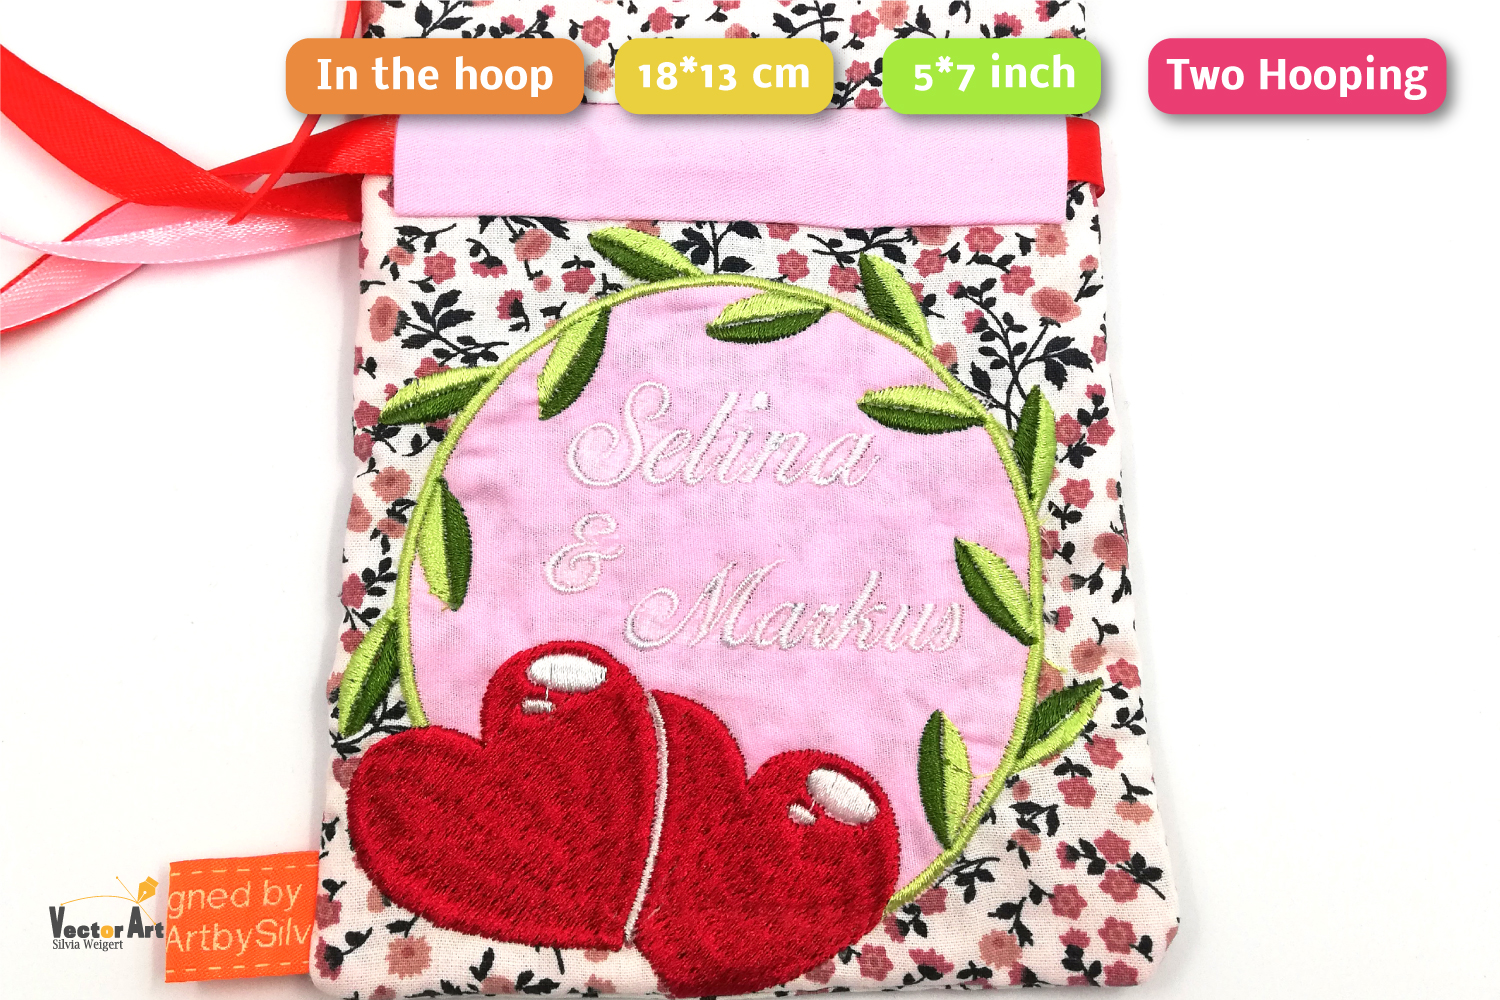 ITH -Drawstring Bag for Wedding Money Gift - Embroidery File example image 2